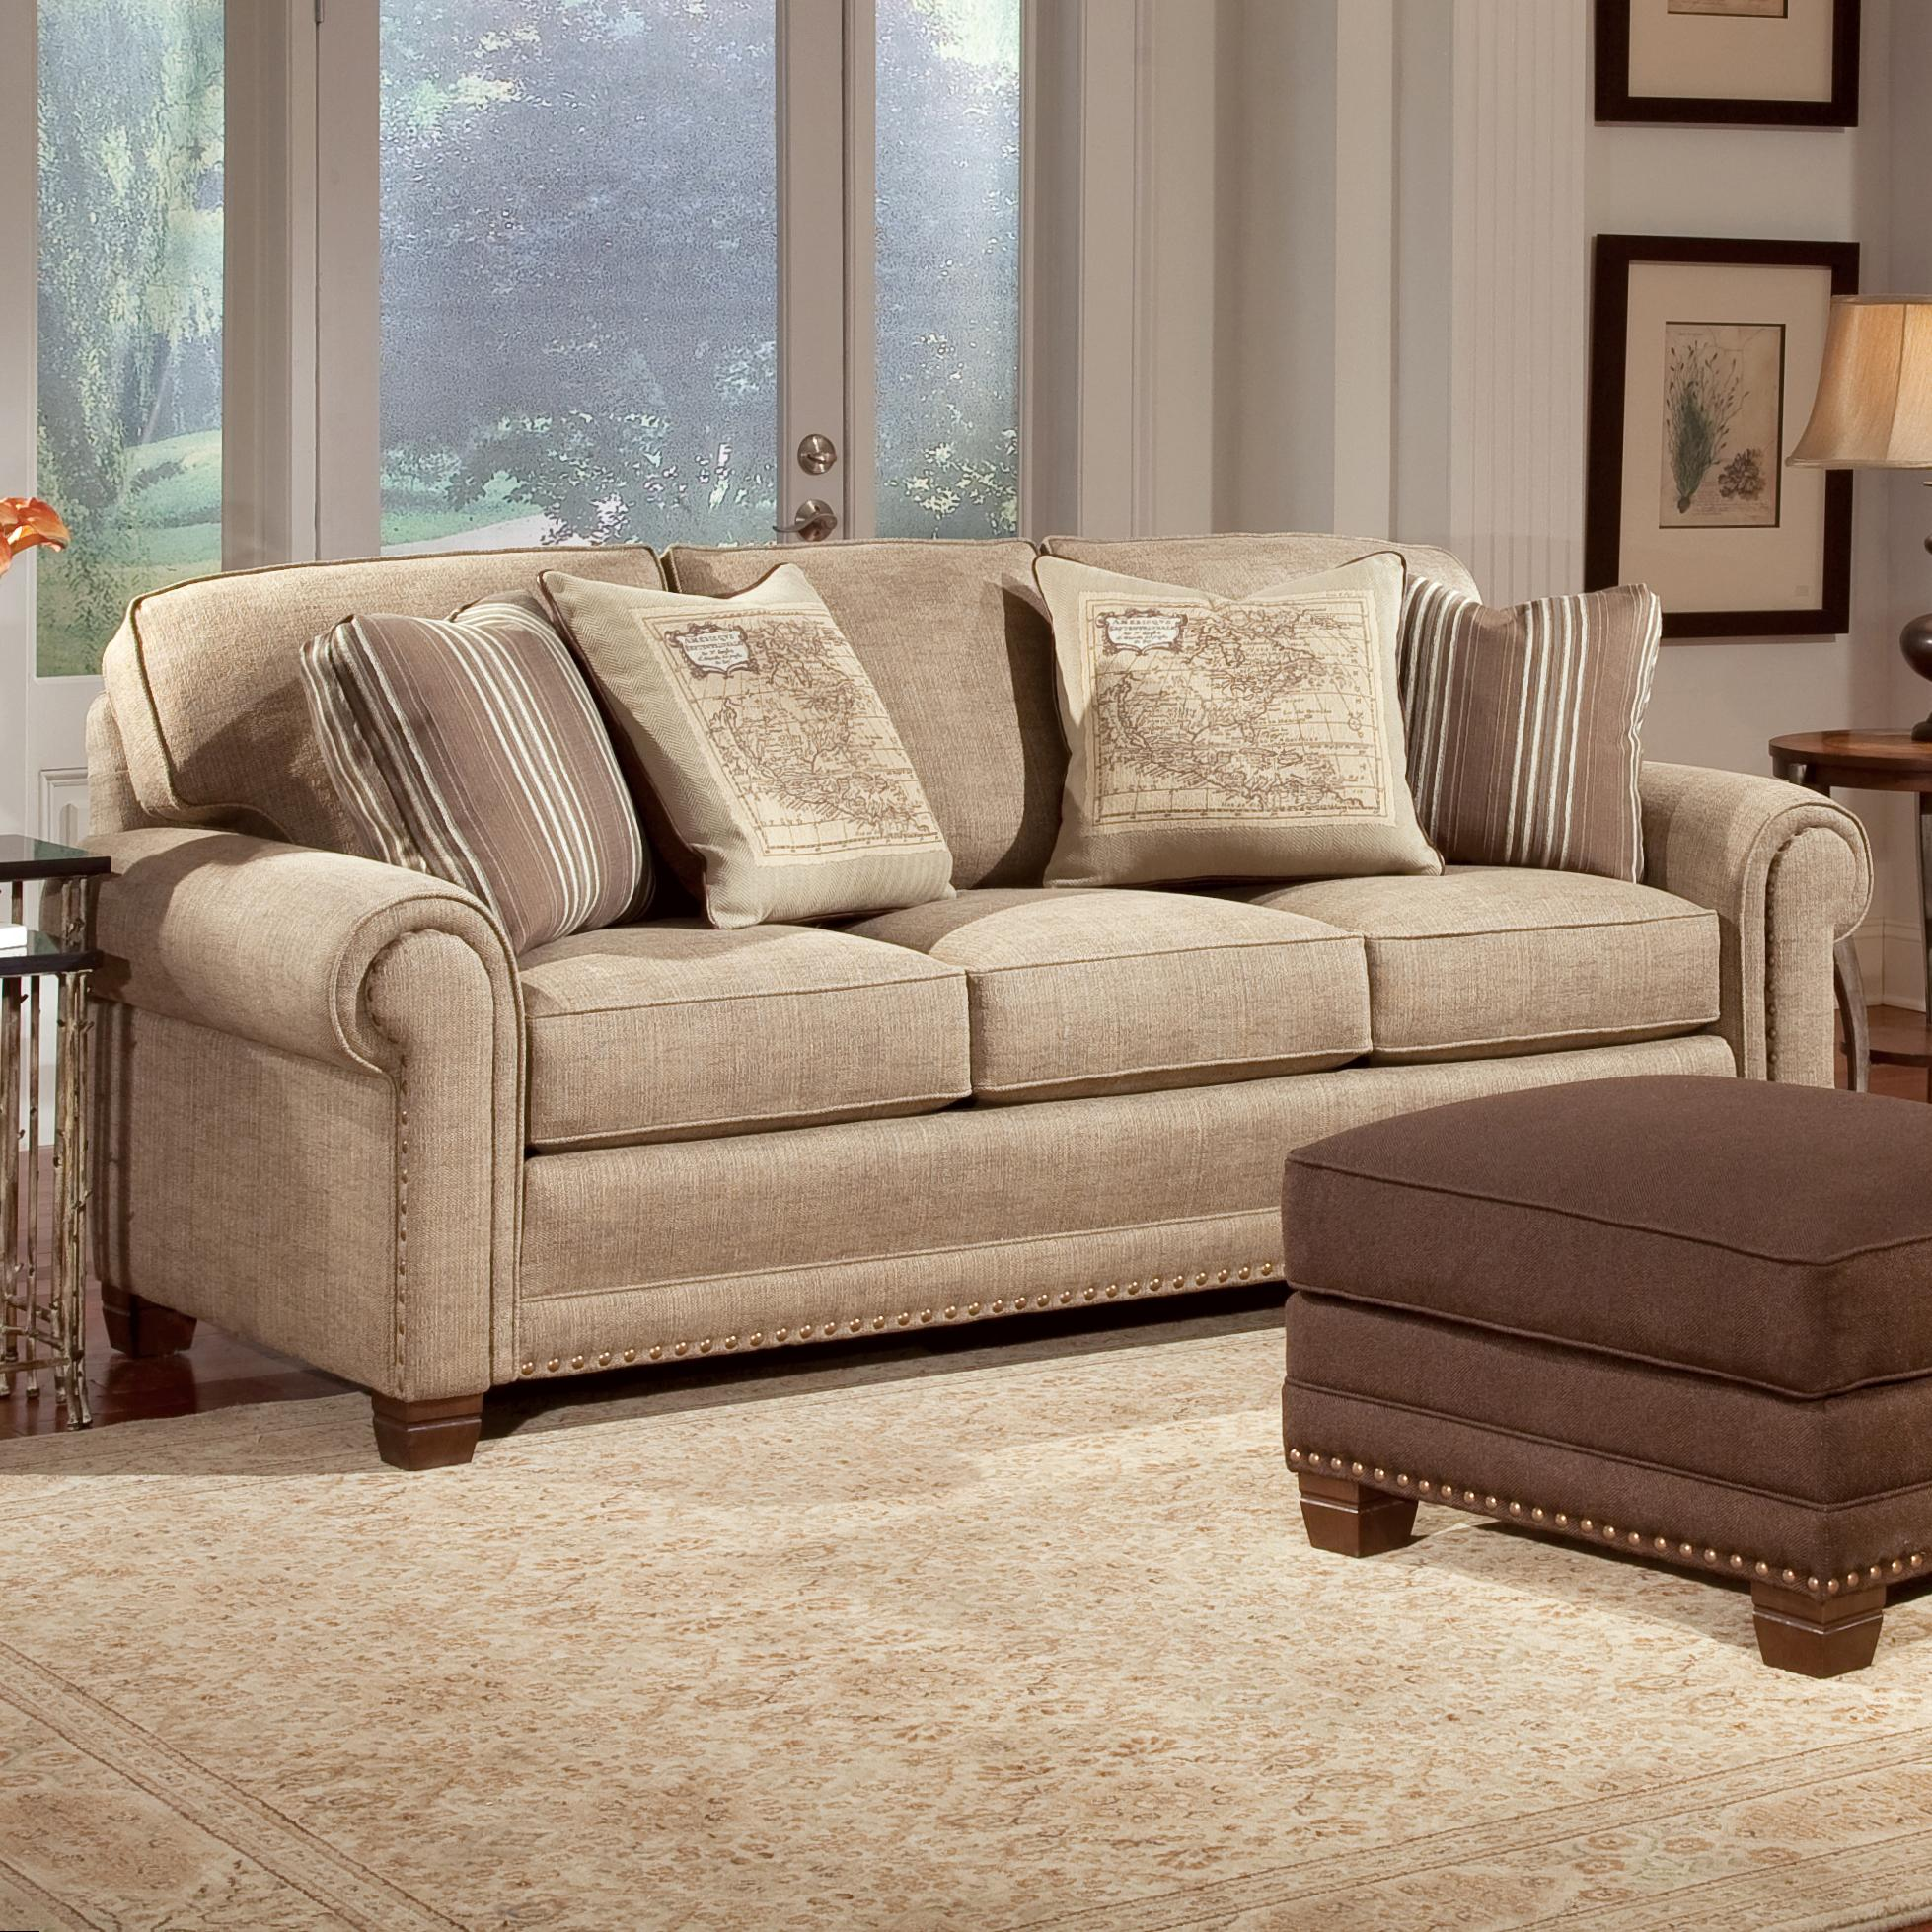 Smith Brothers 393 Traditional Stationary Sofa - Item Number: 393-10